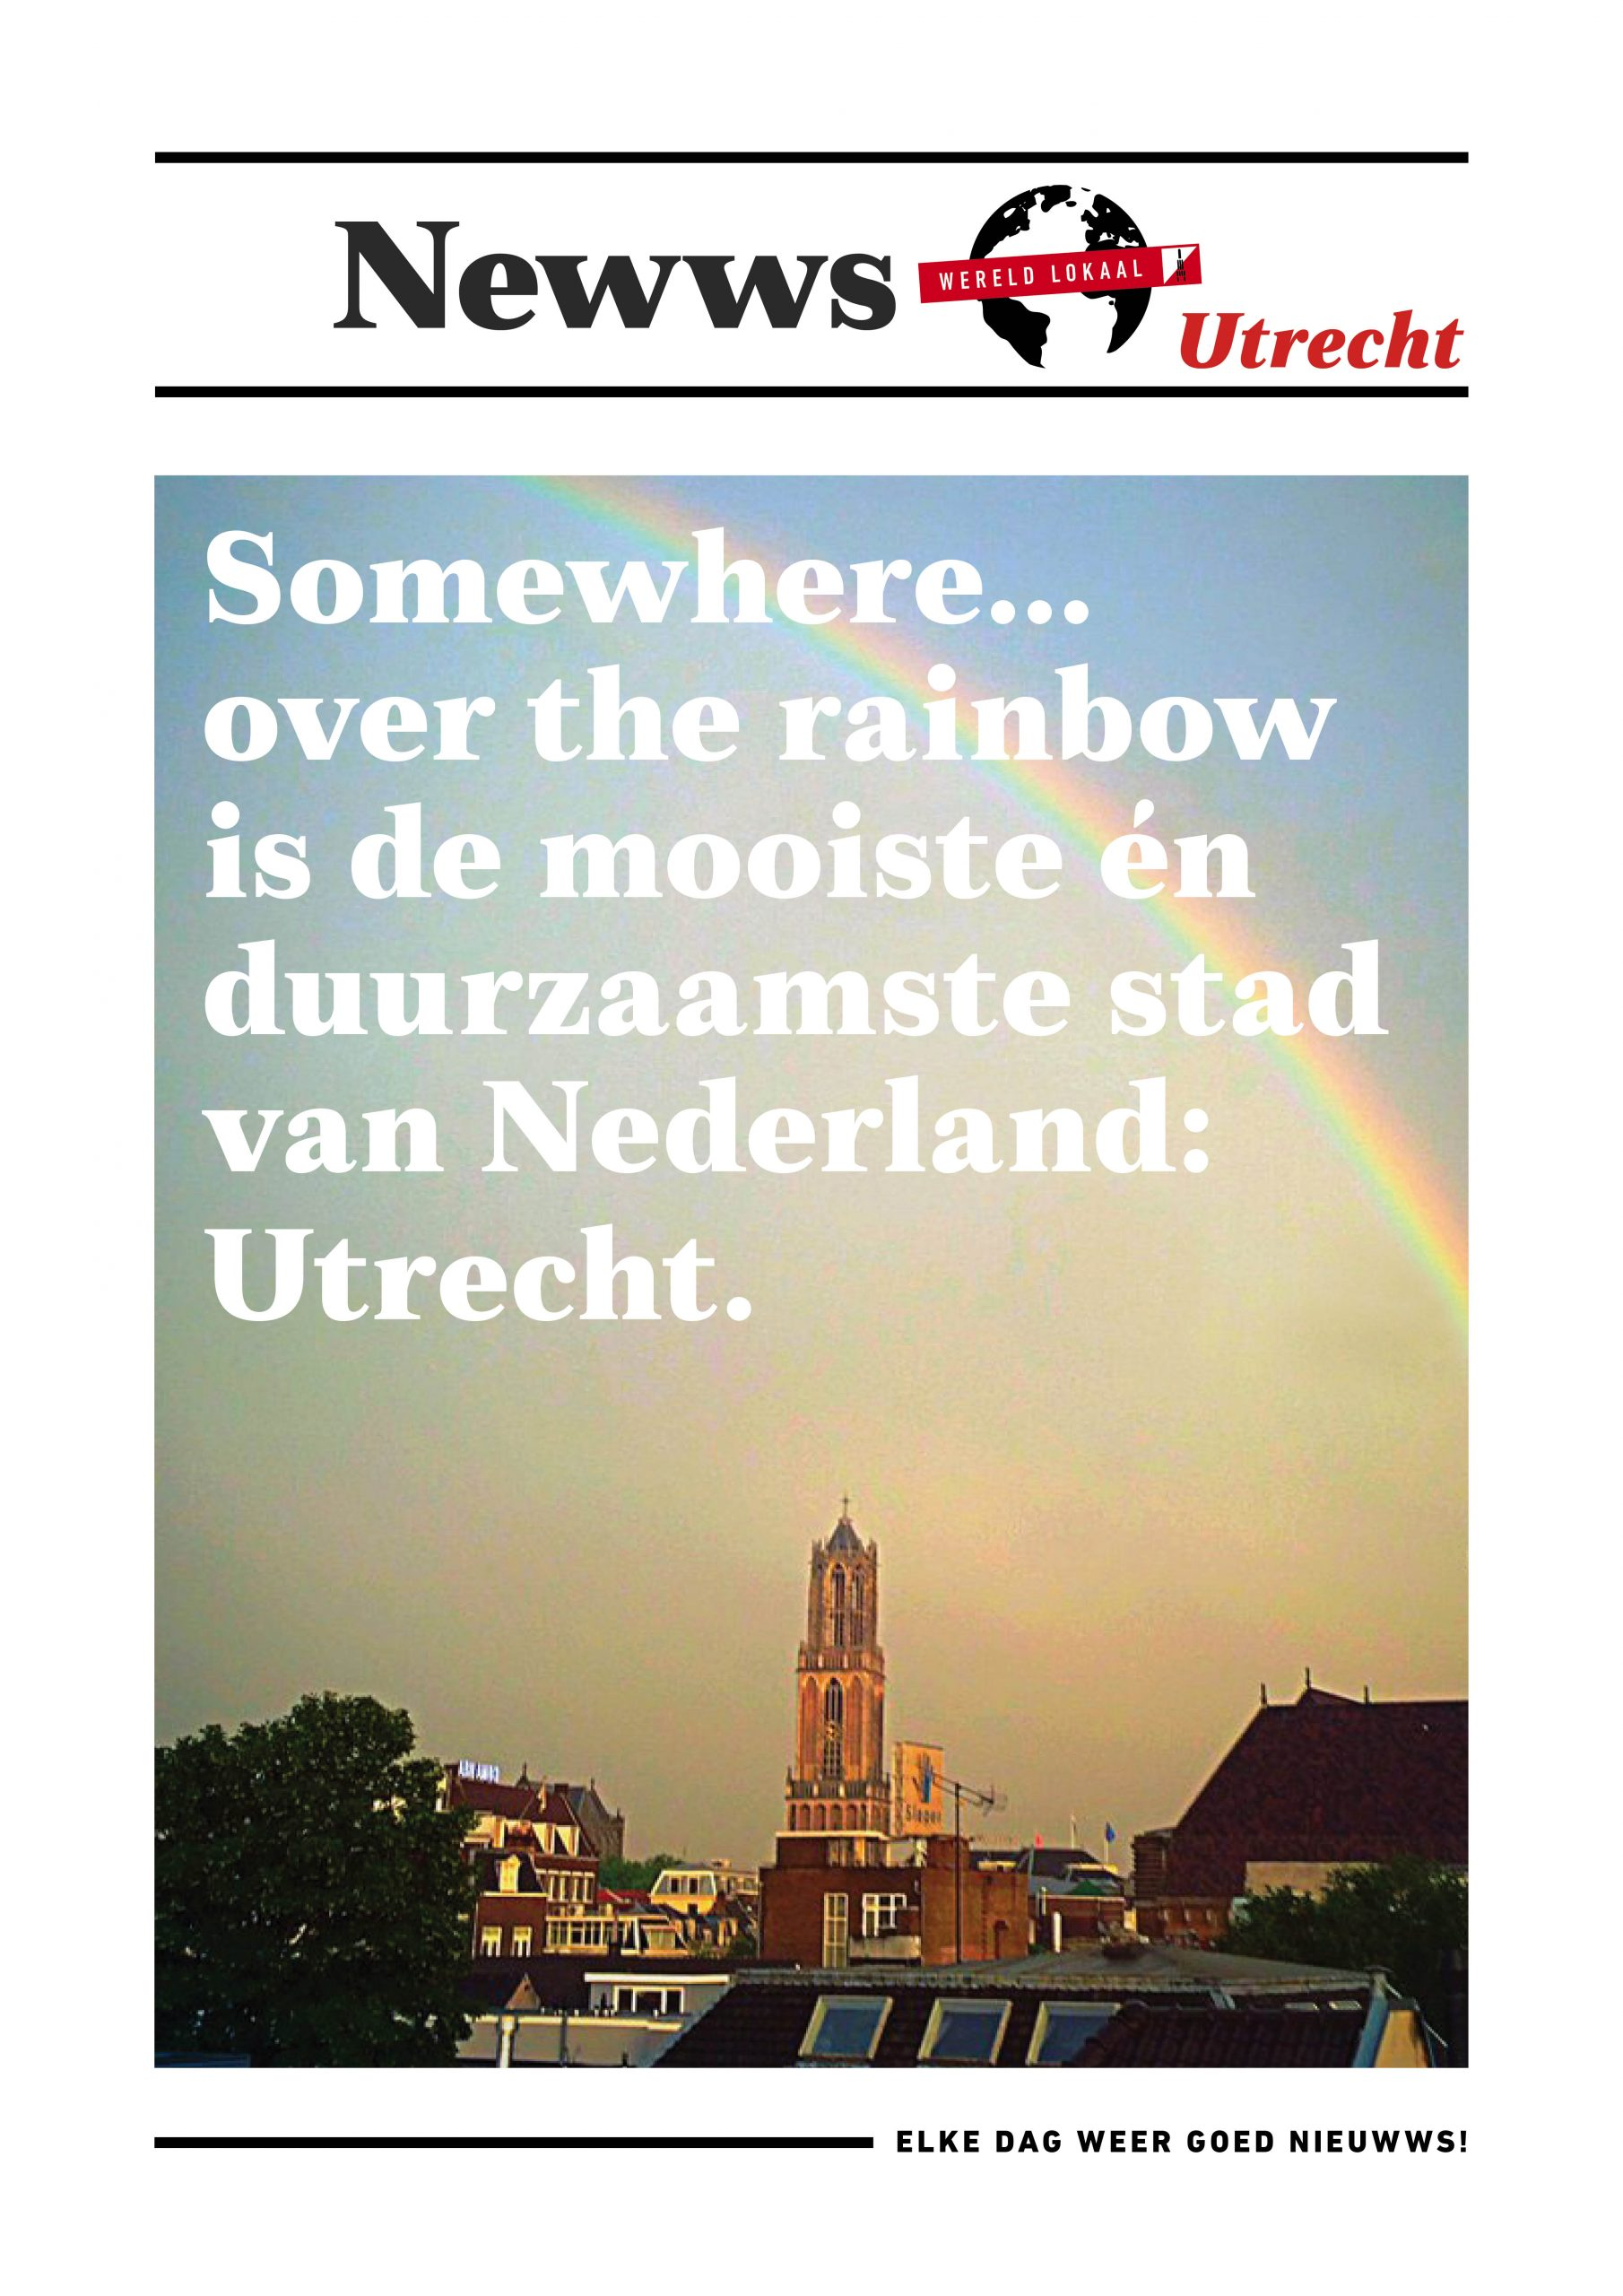 Newws home - Somewhere over the rainbow Utrecht min